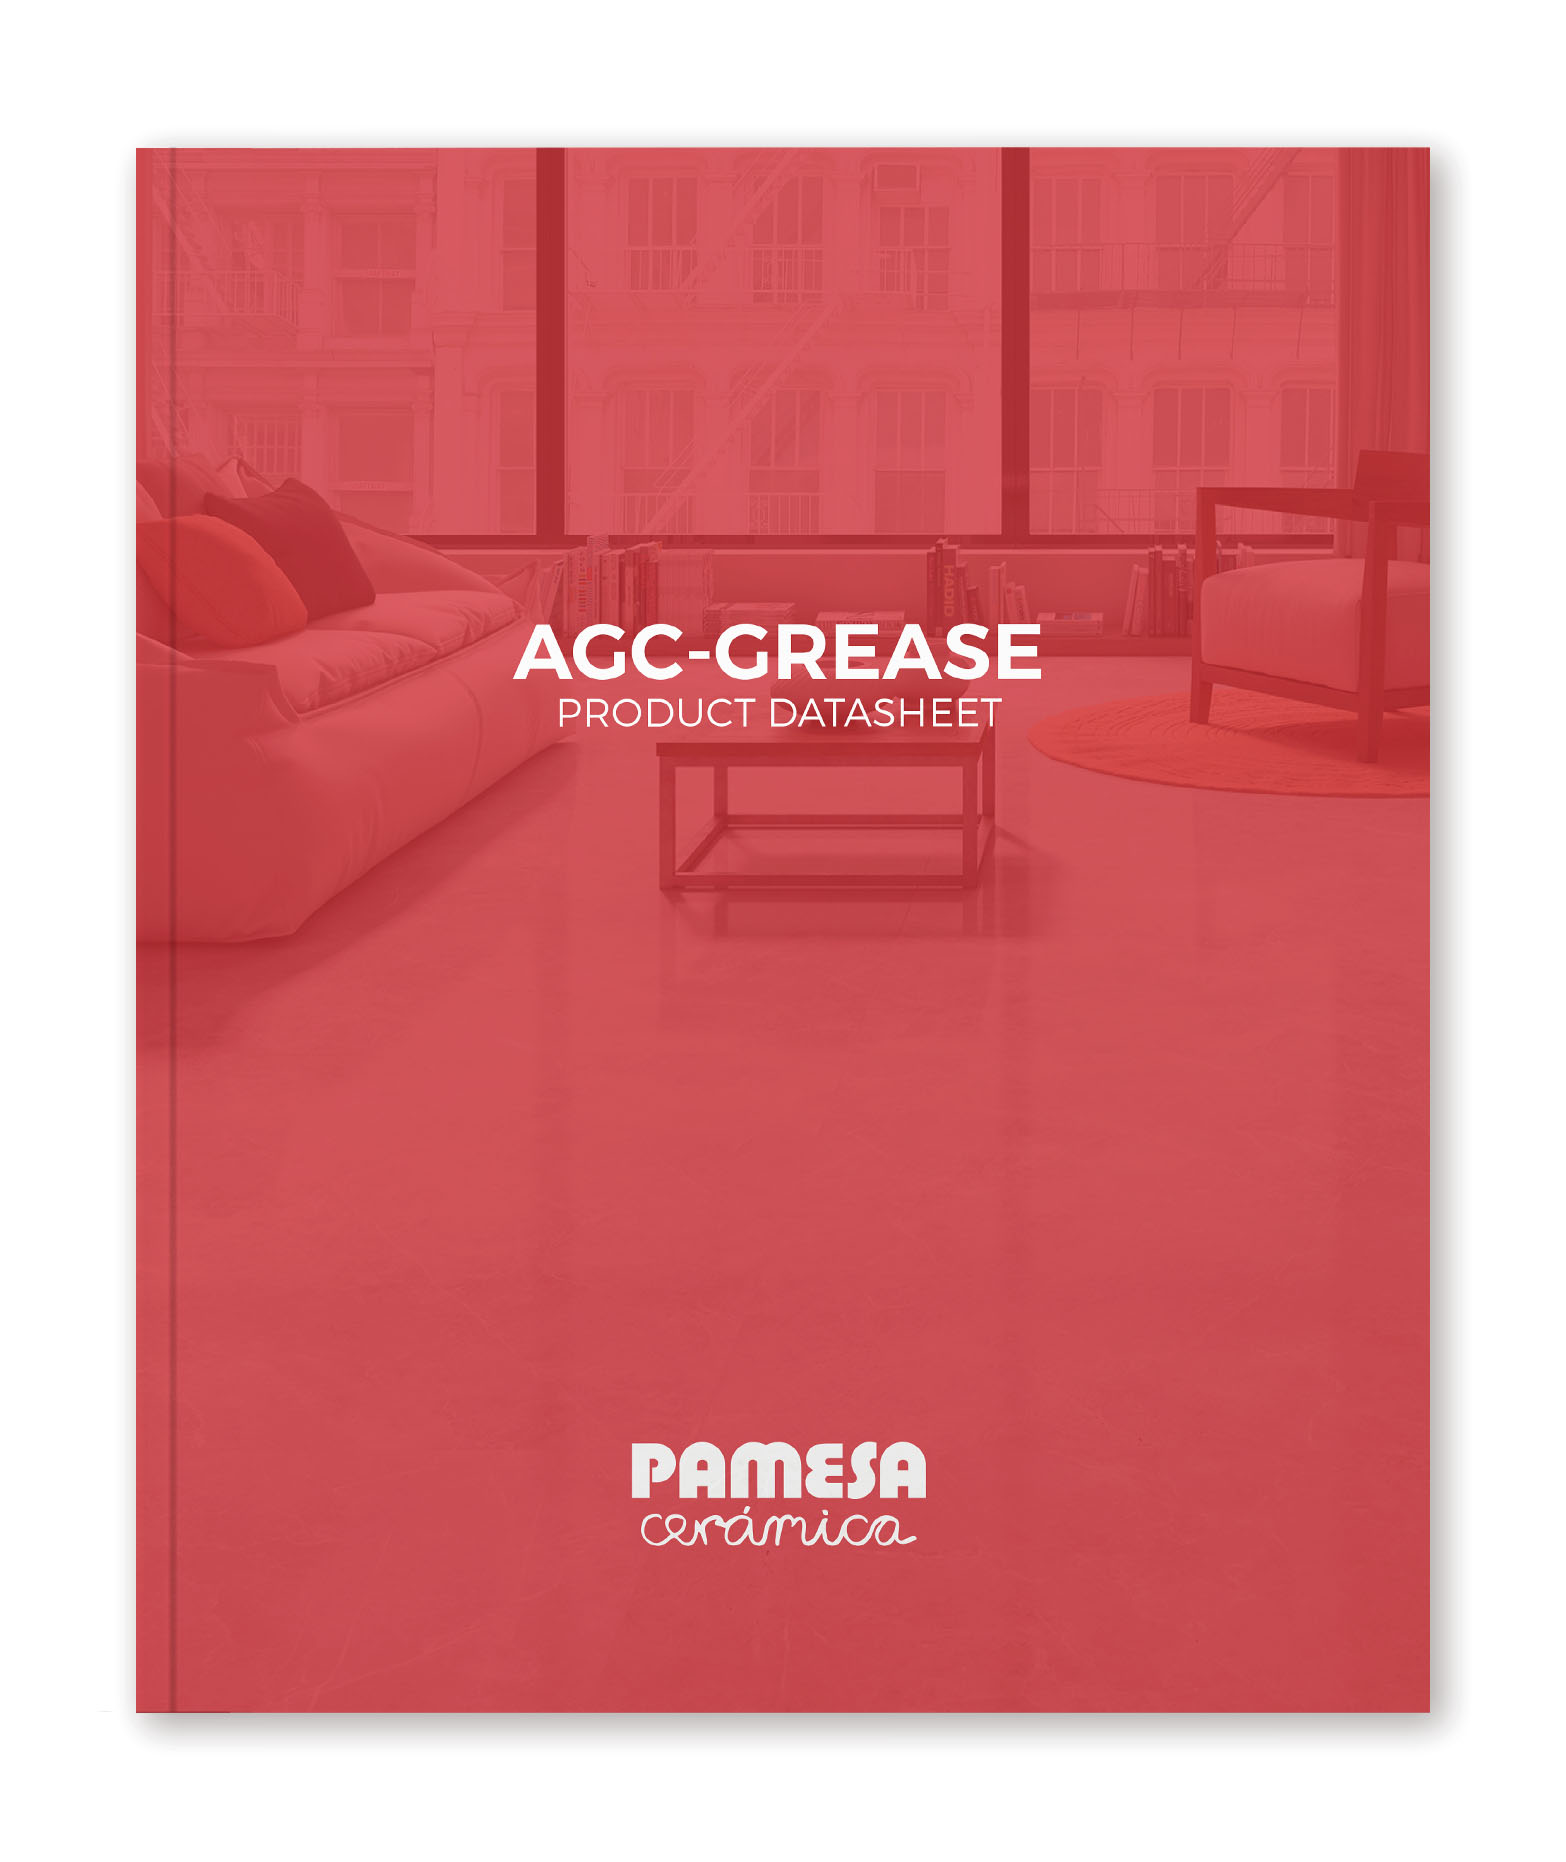 AGC-GREASE